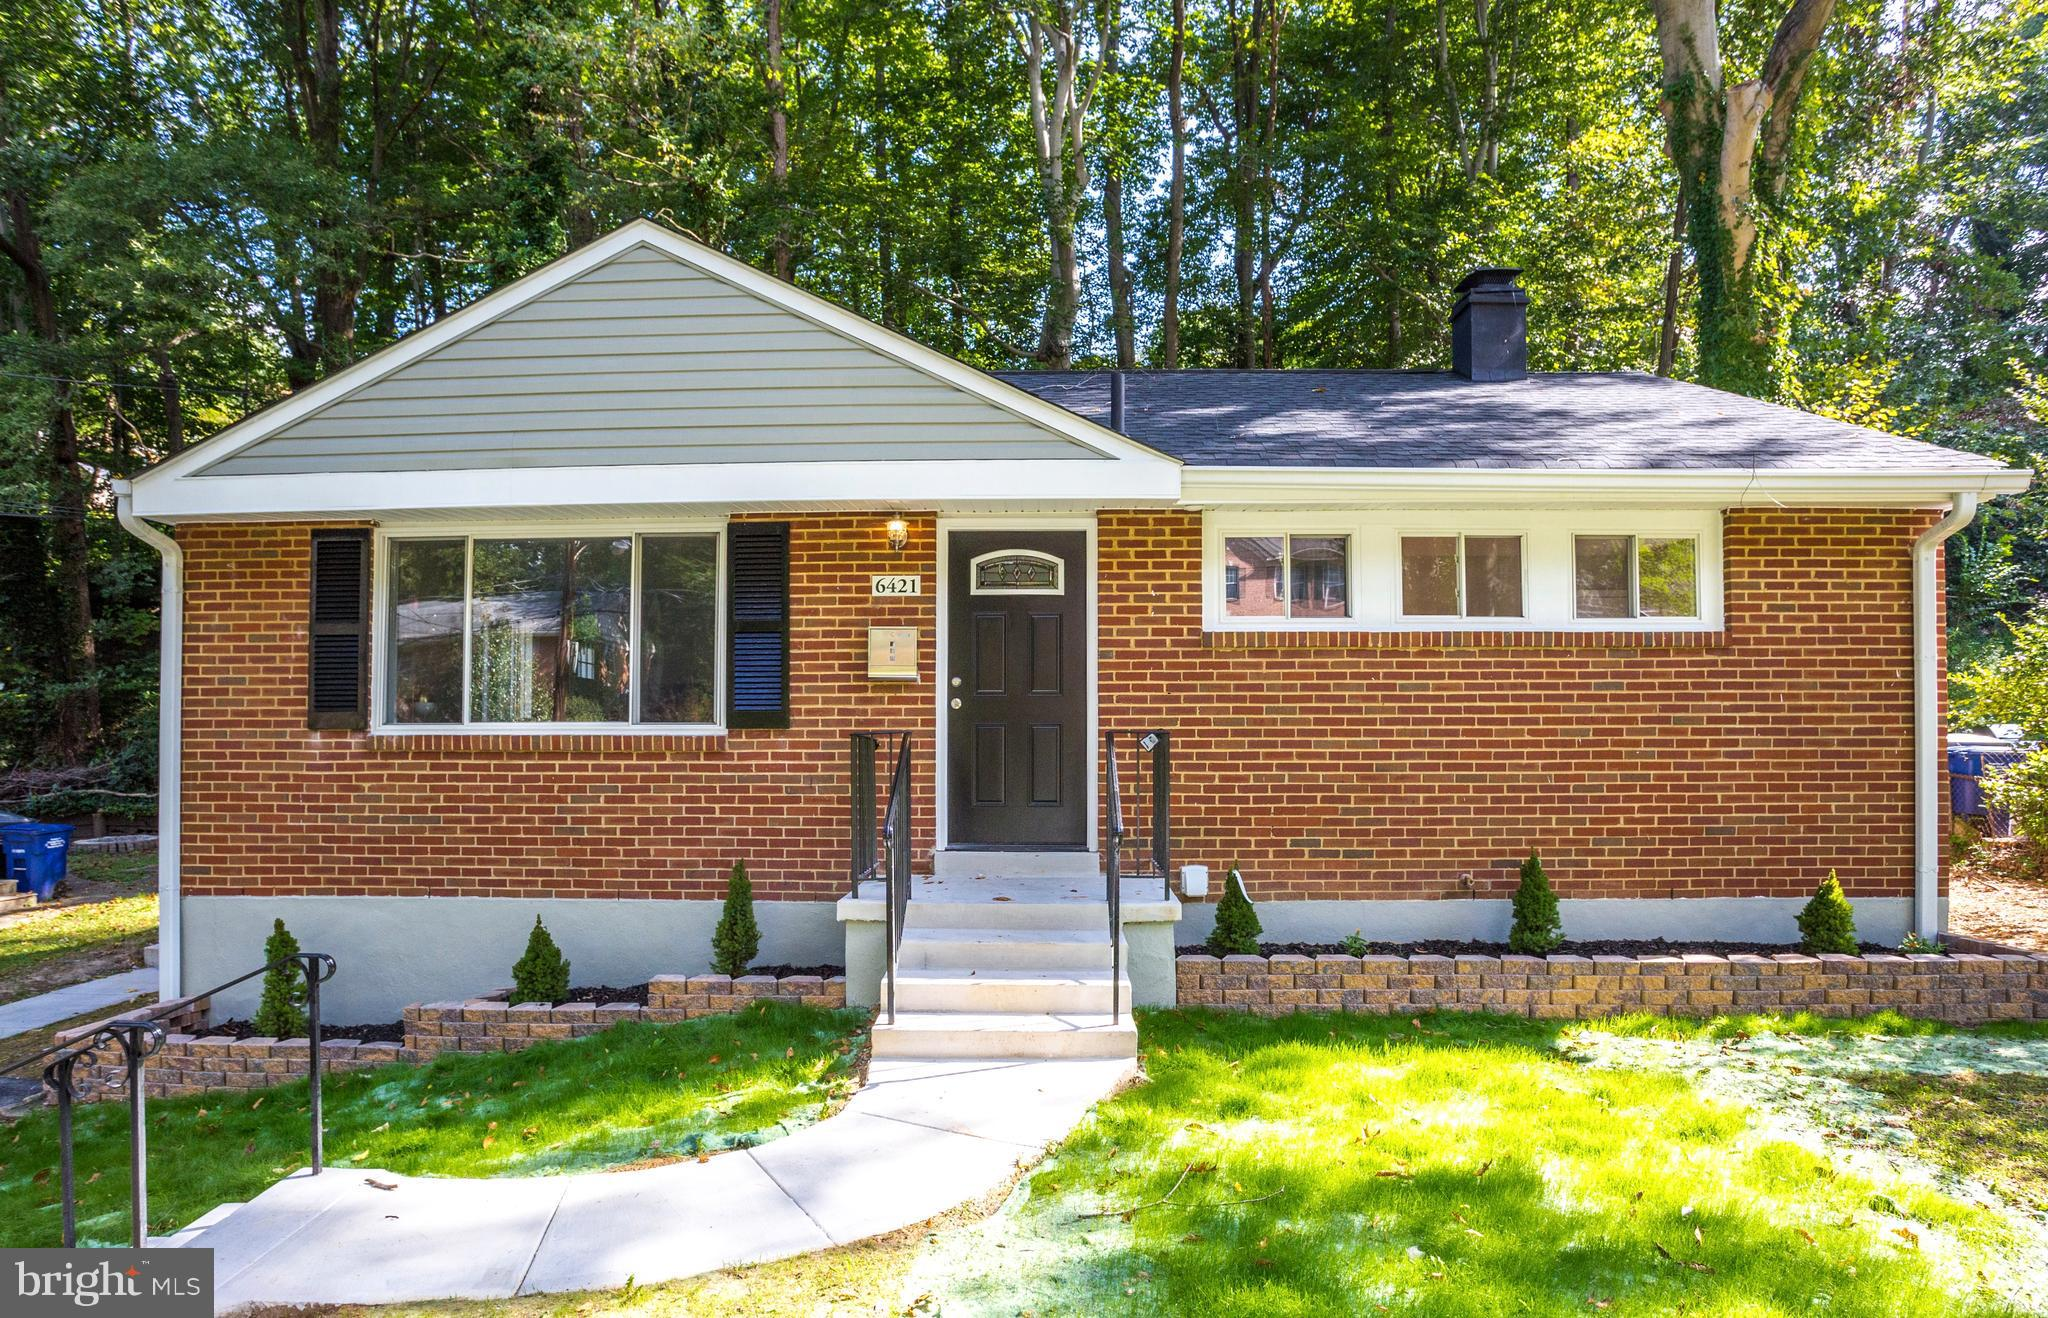 NO TRICKS JUST AN AMAZING TREAT! This completely remodeled home has it all! Redesigned open floor plan w/impeccable attn to detail, perfect for entertaining.Gourmet kitchen w/granite&stainless.2 Master Suites,Recessed lighting,large deck,new roof,new appliances,and more.100% MOVE-IN READY!EVERYTHING IS DONE!Close to I495 and transport,2 mi to metro.